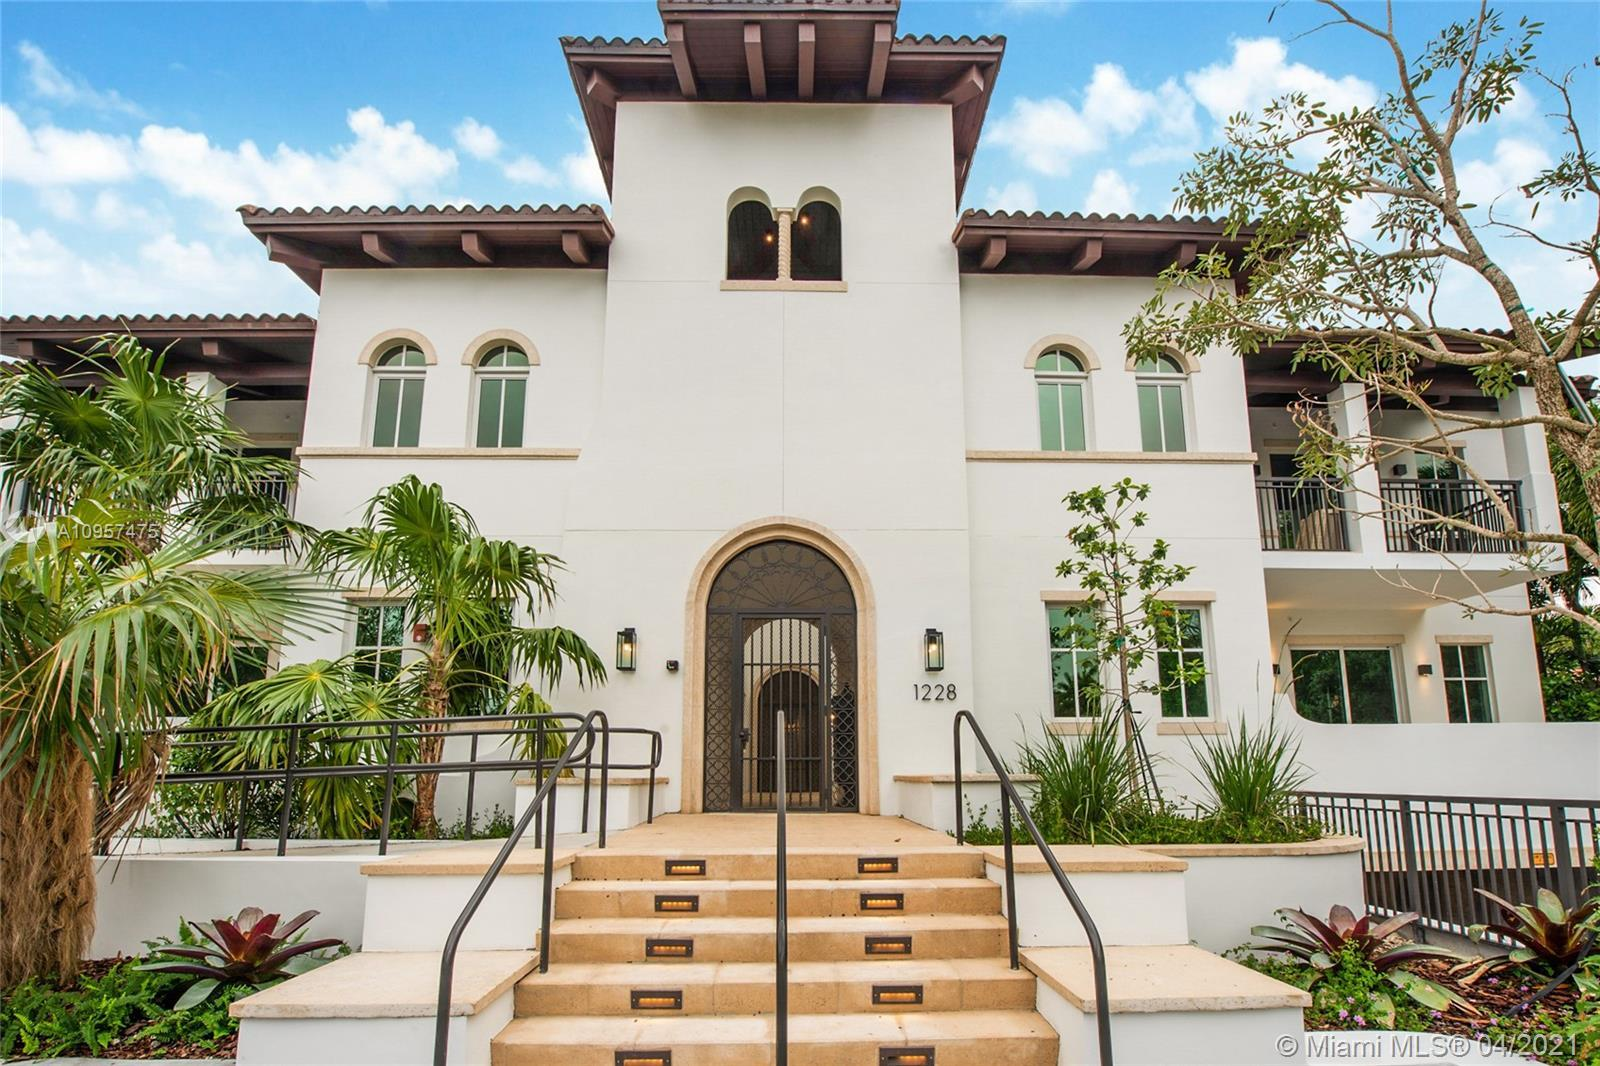 Be one of the fortunate few to live next to the iconic Biltmore Hotel. Enjoy Landmark-resort living